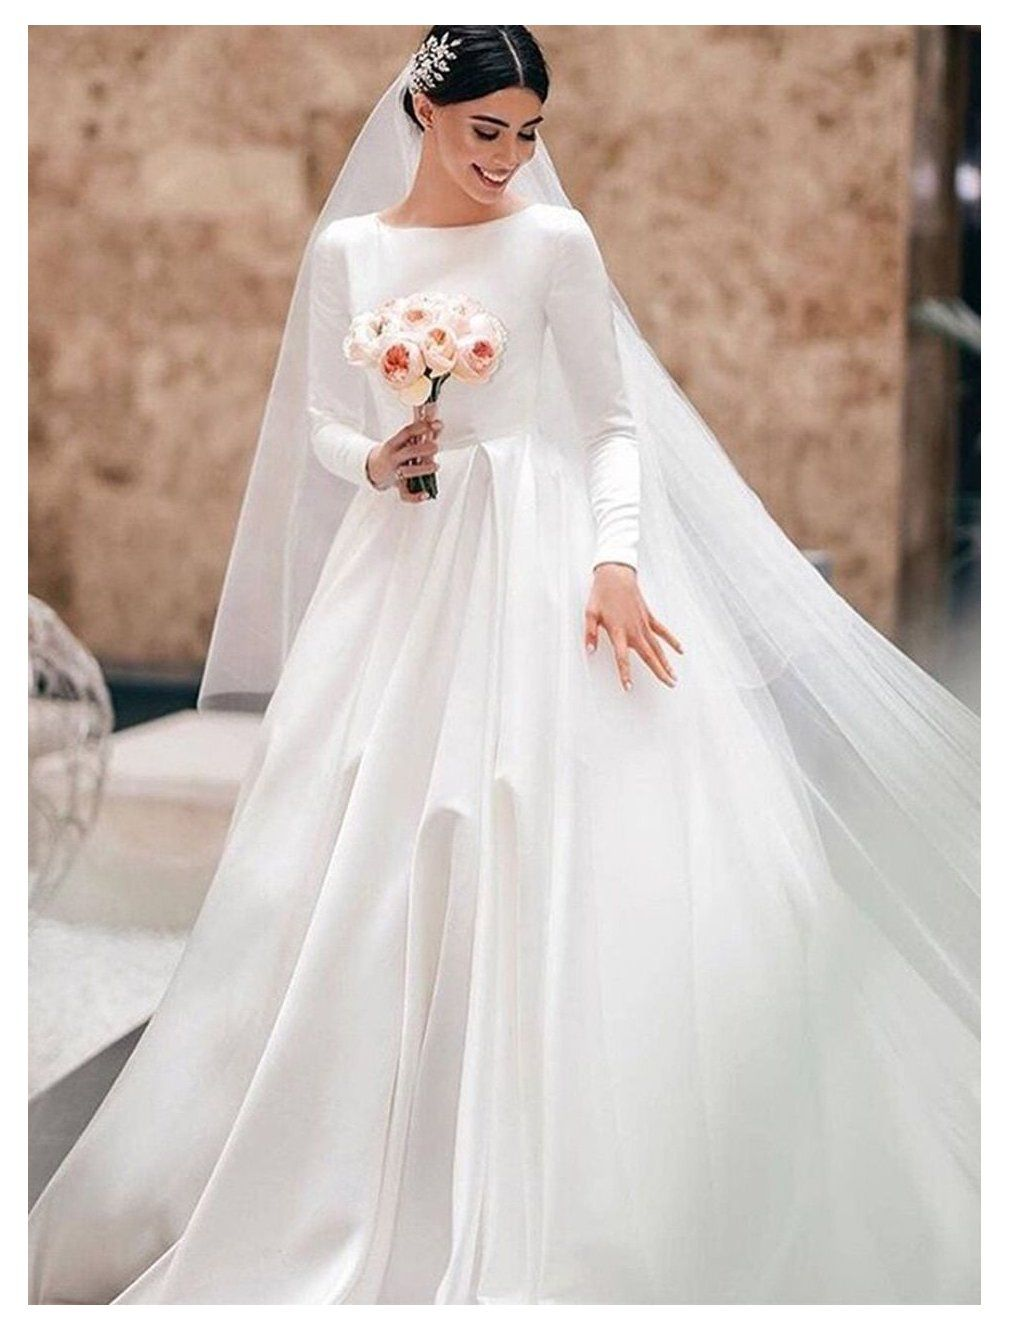 Modest A Line Long Sleeve Satin Bridal Dress 12277 Modest Wedding Gown Beautiful Dr In 2021 Indian Wedding Dress Wedding Dresses Simple Wedding Dresses Cinderella [ 1330 x 1009 Pixel ]